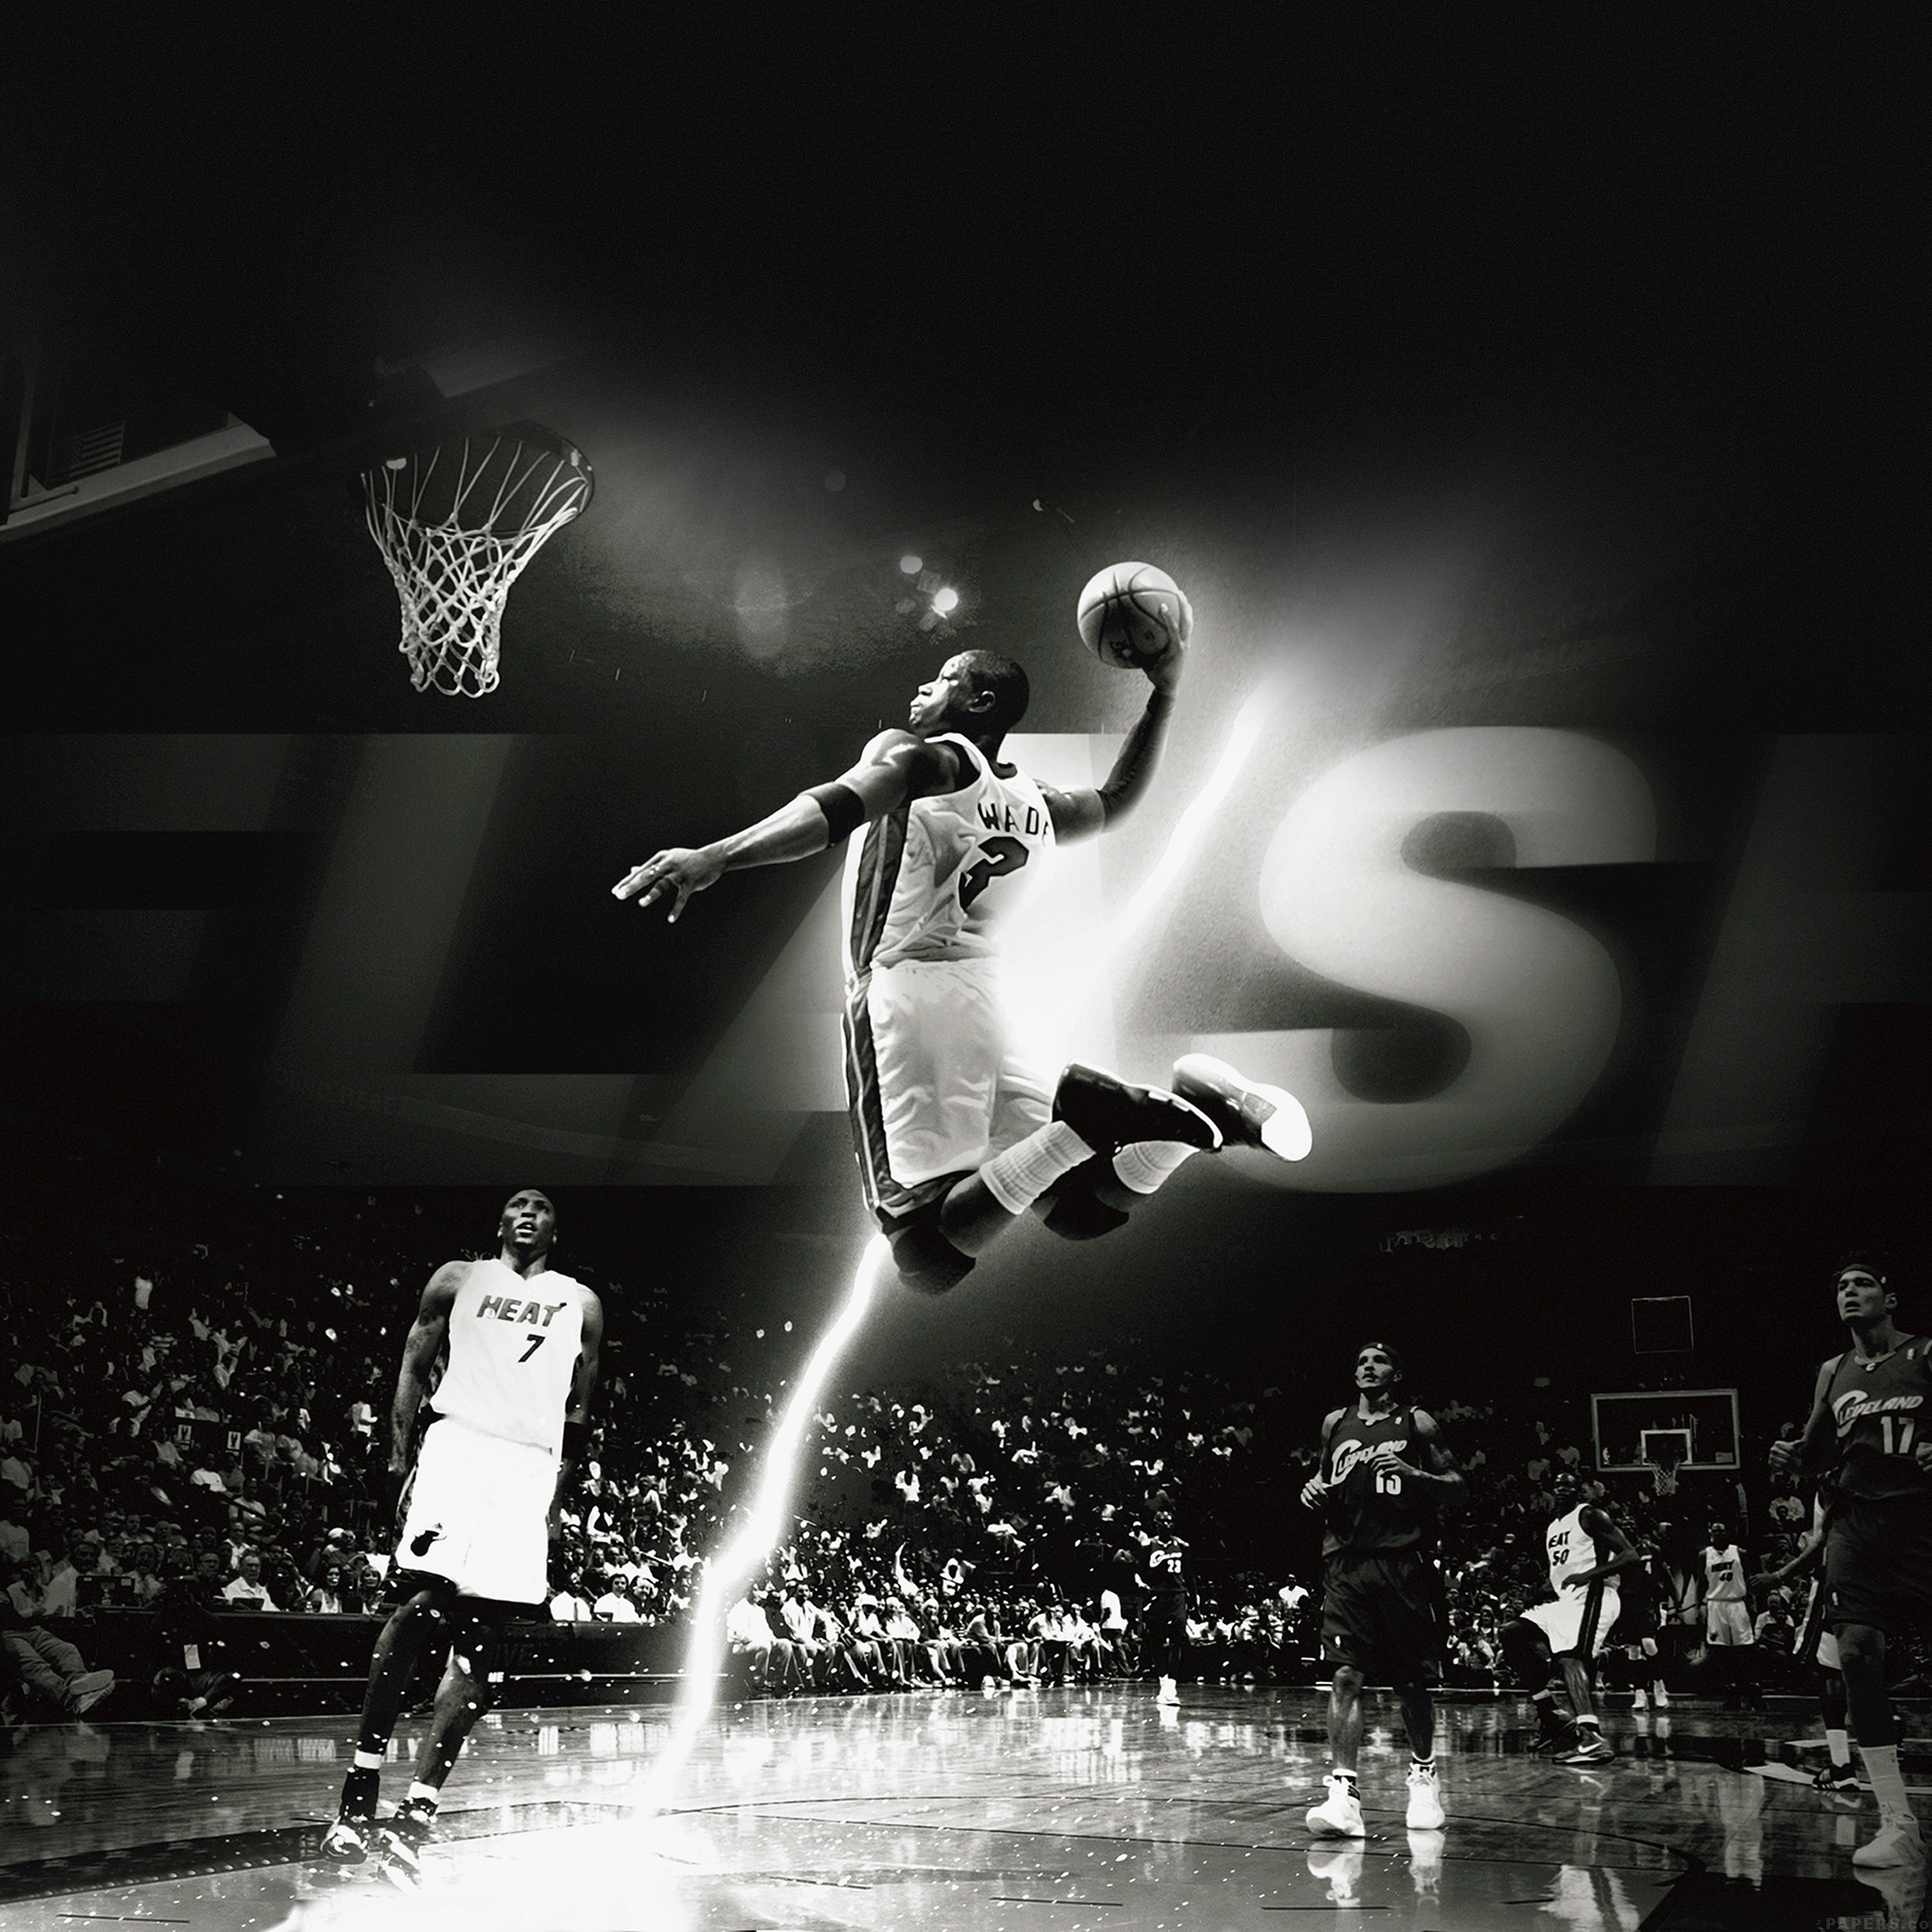 Hc84-dwyane-wade-dunk-nba-flash-sports